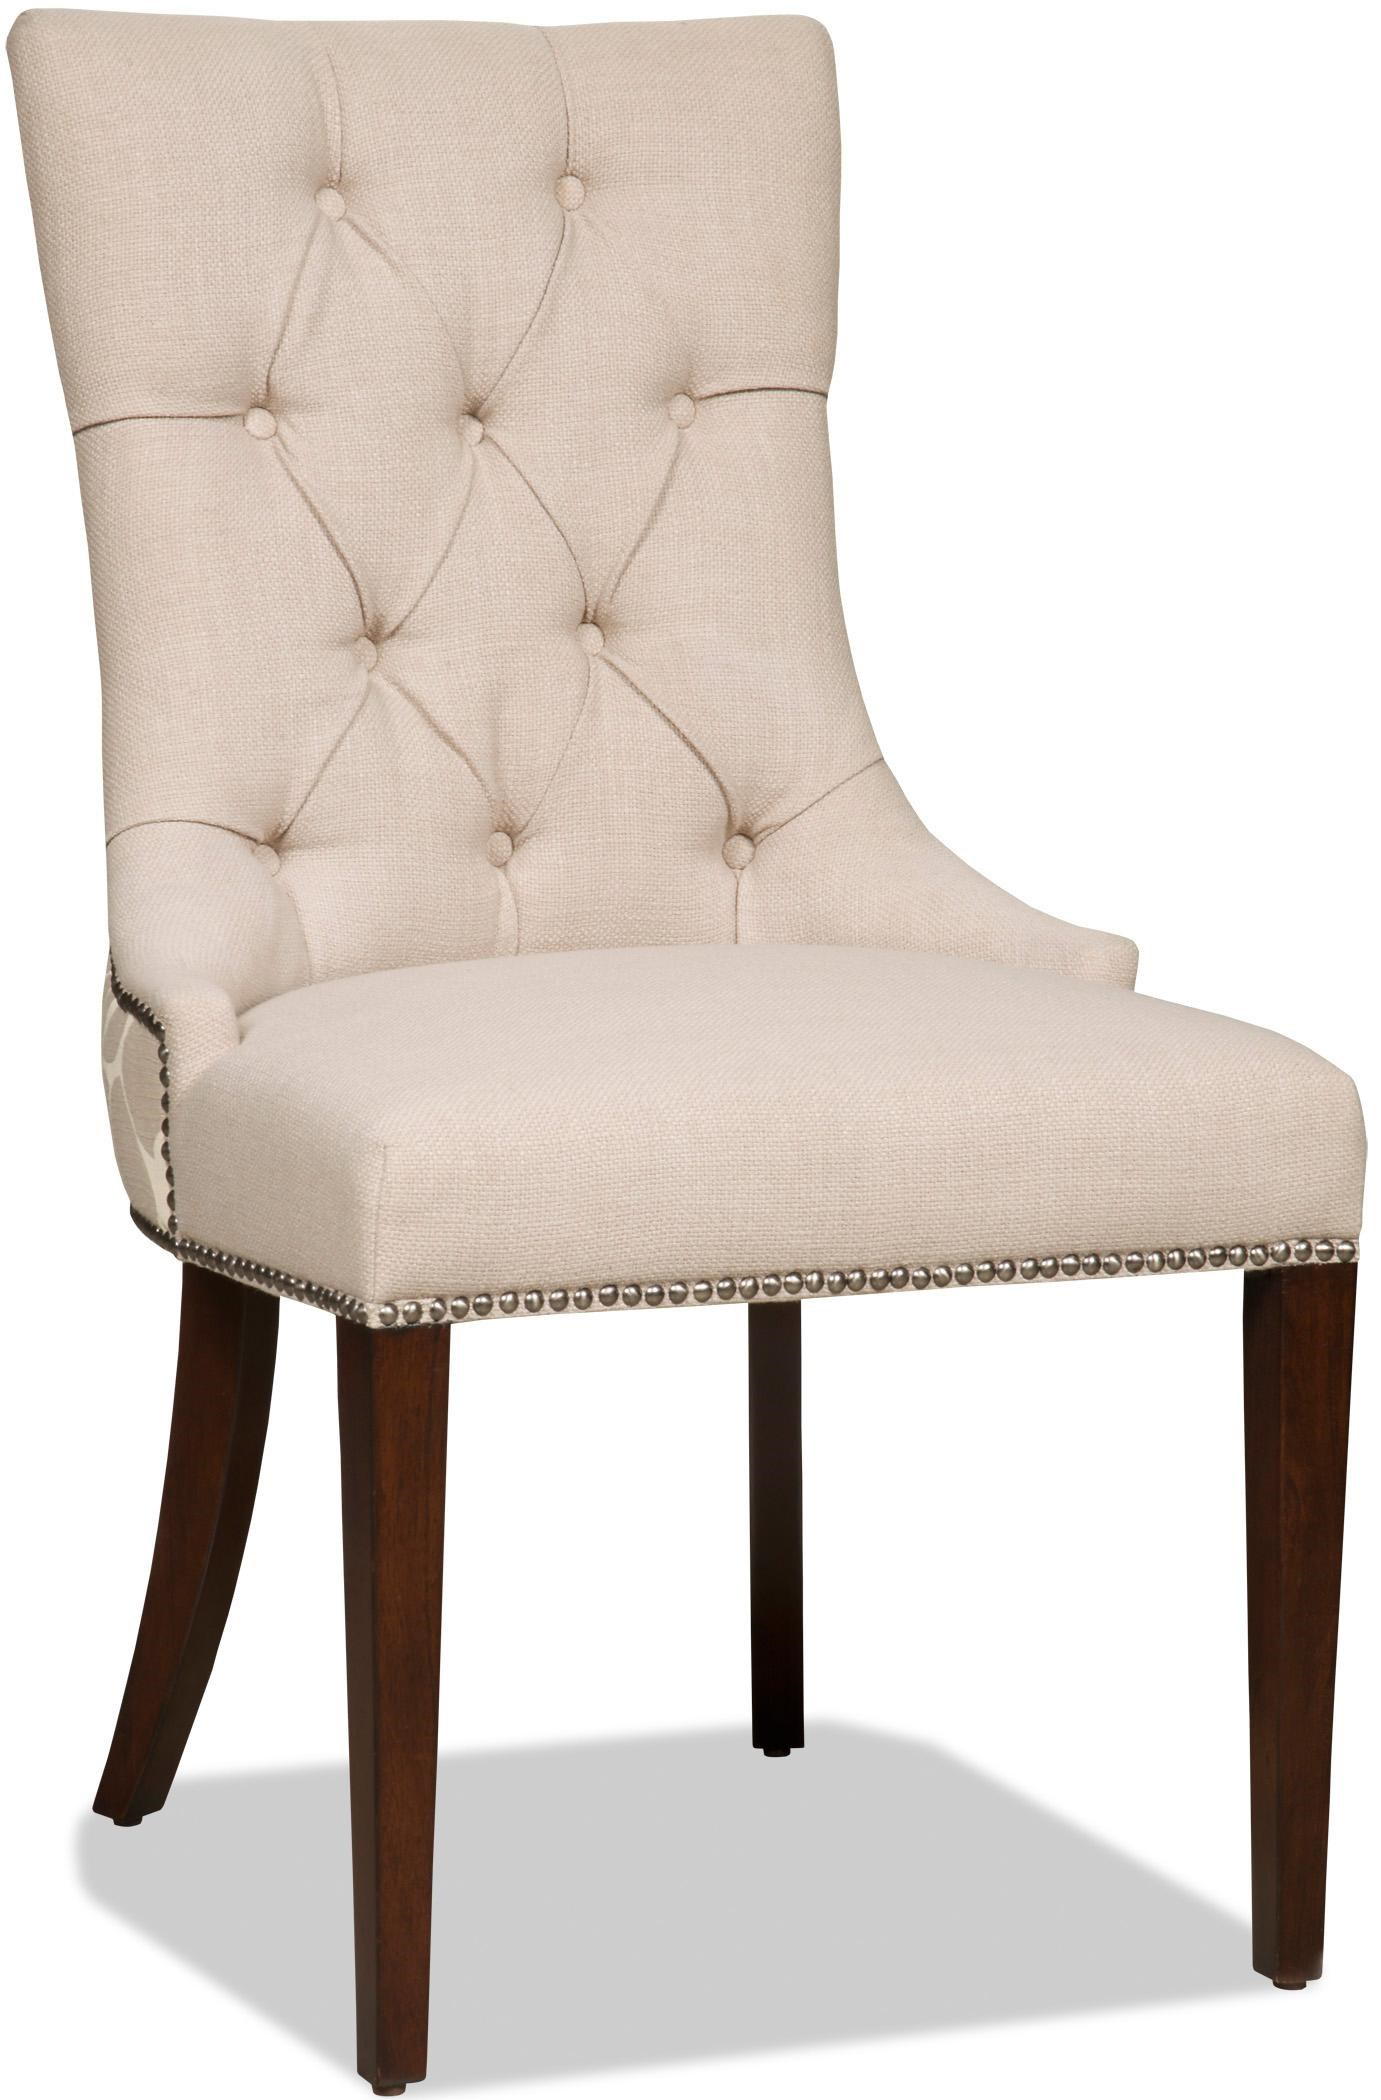 Hooker Furniture Dining Chairs Upholstered Dining Side Chair With Button  Tufting